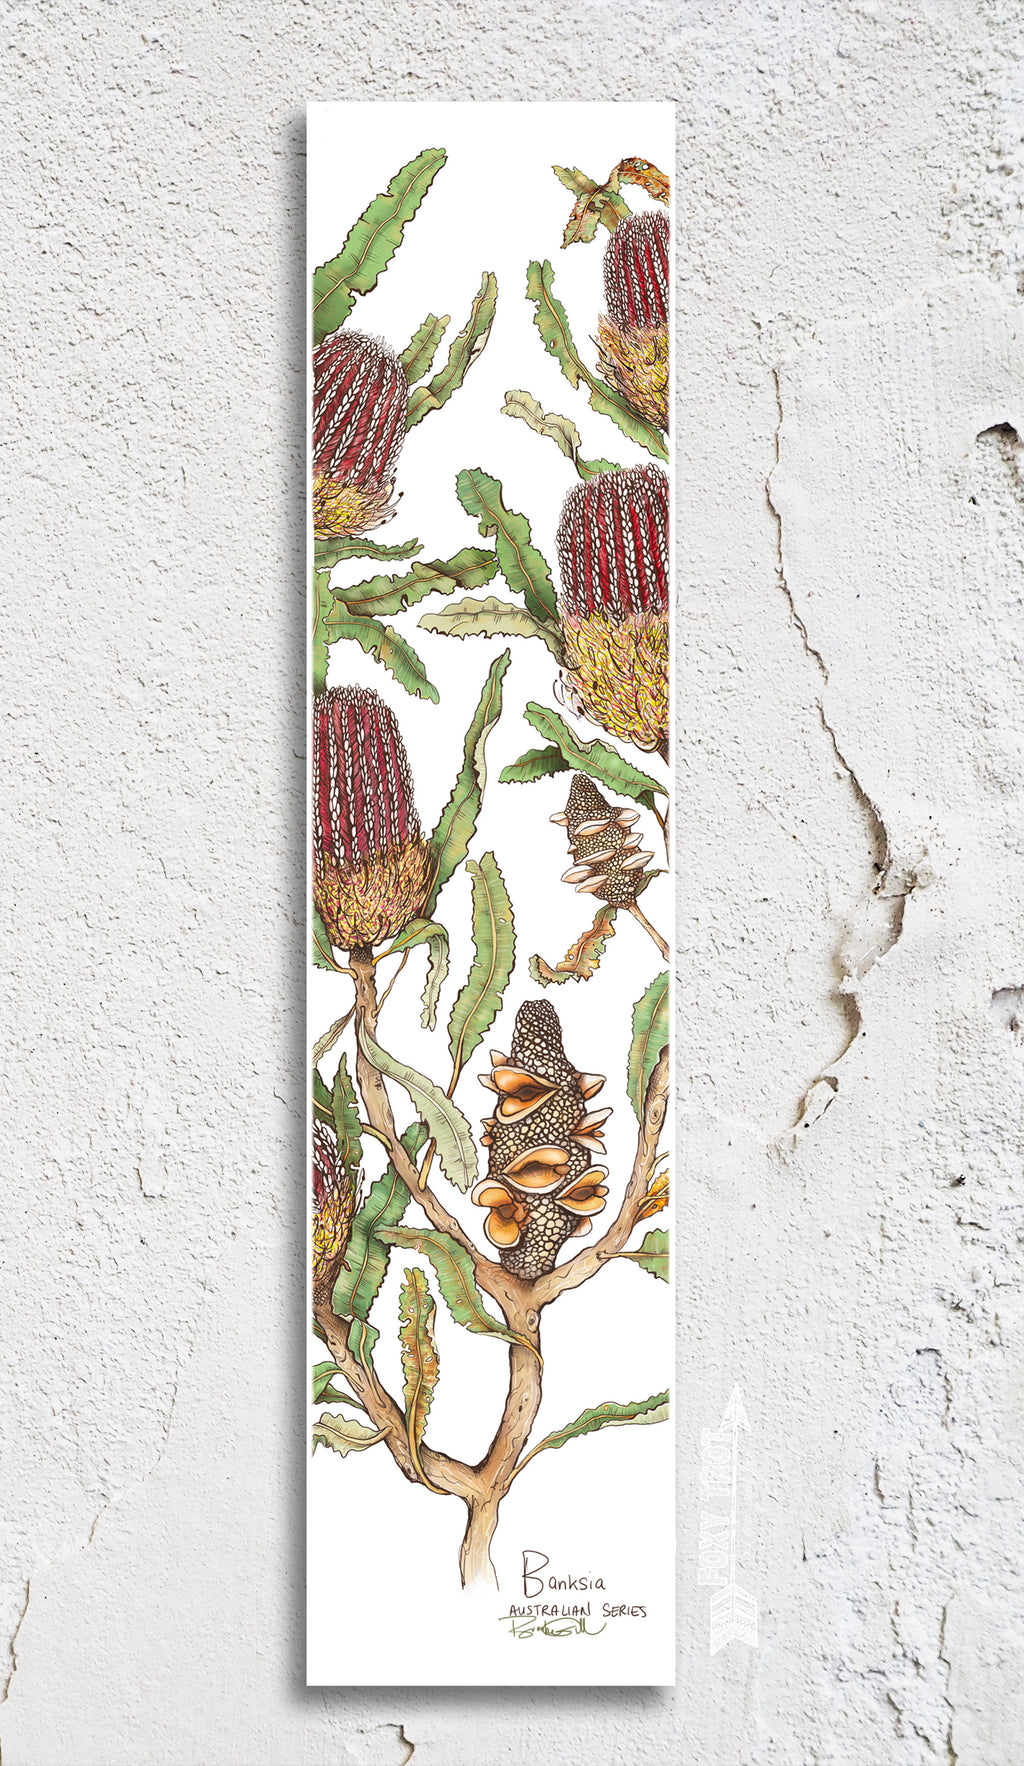 Banksia Bookmark